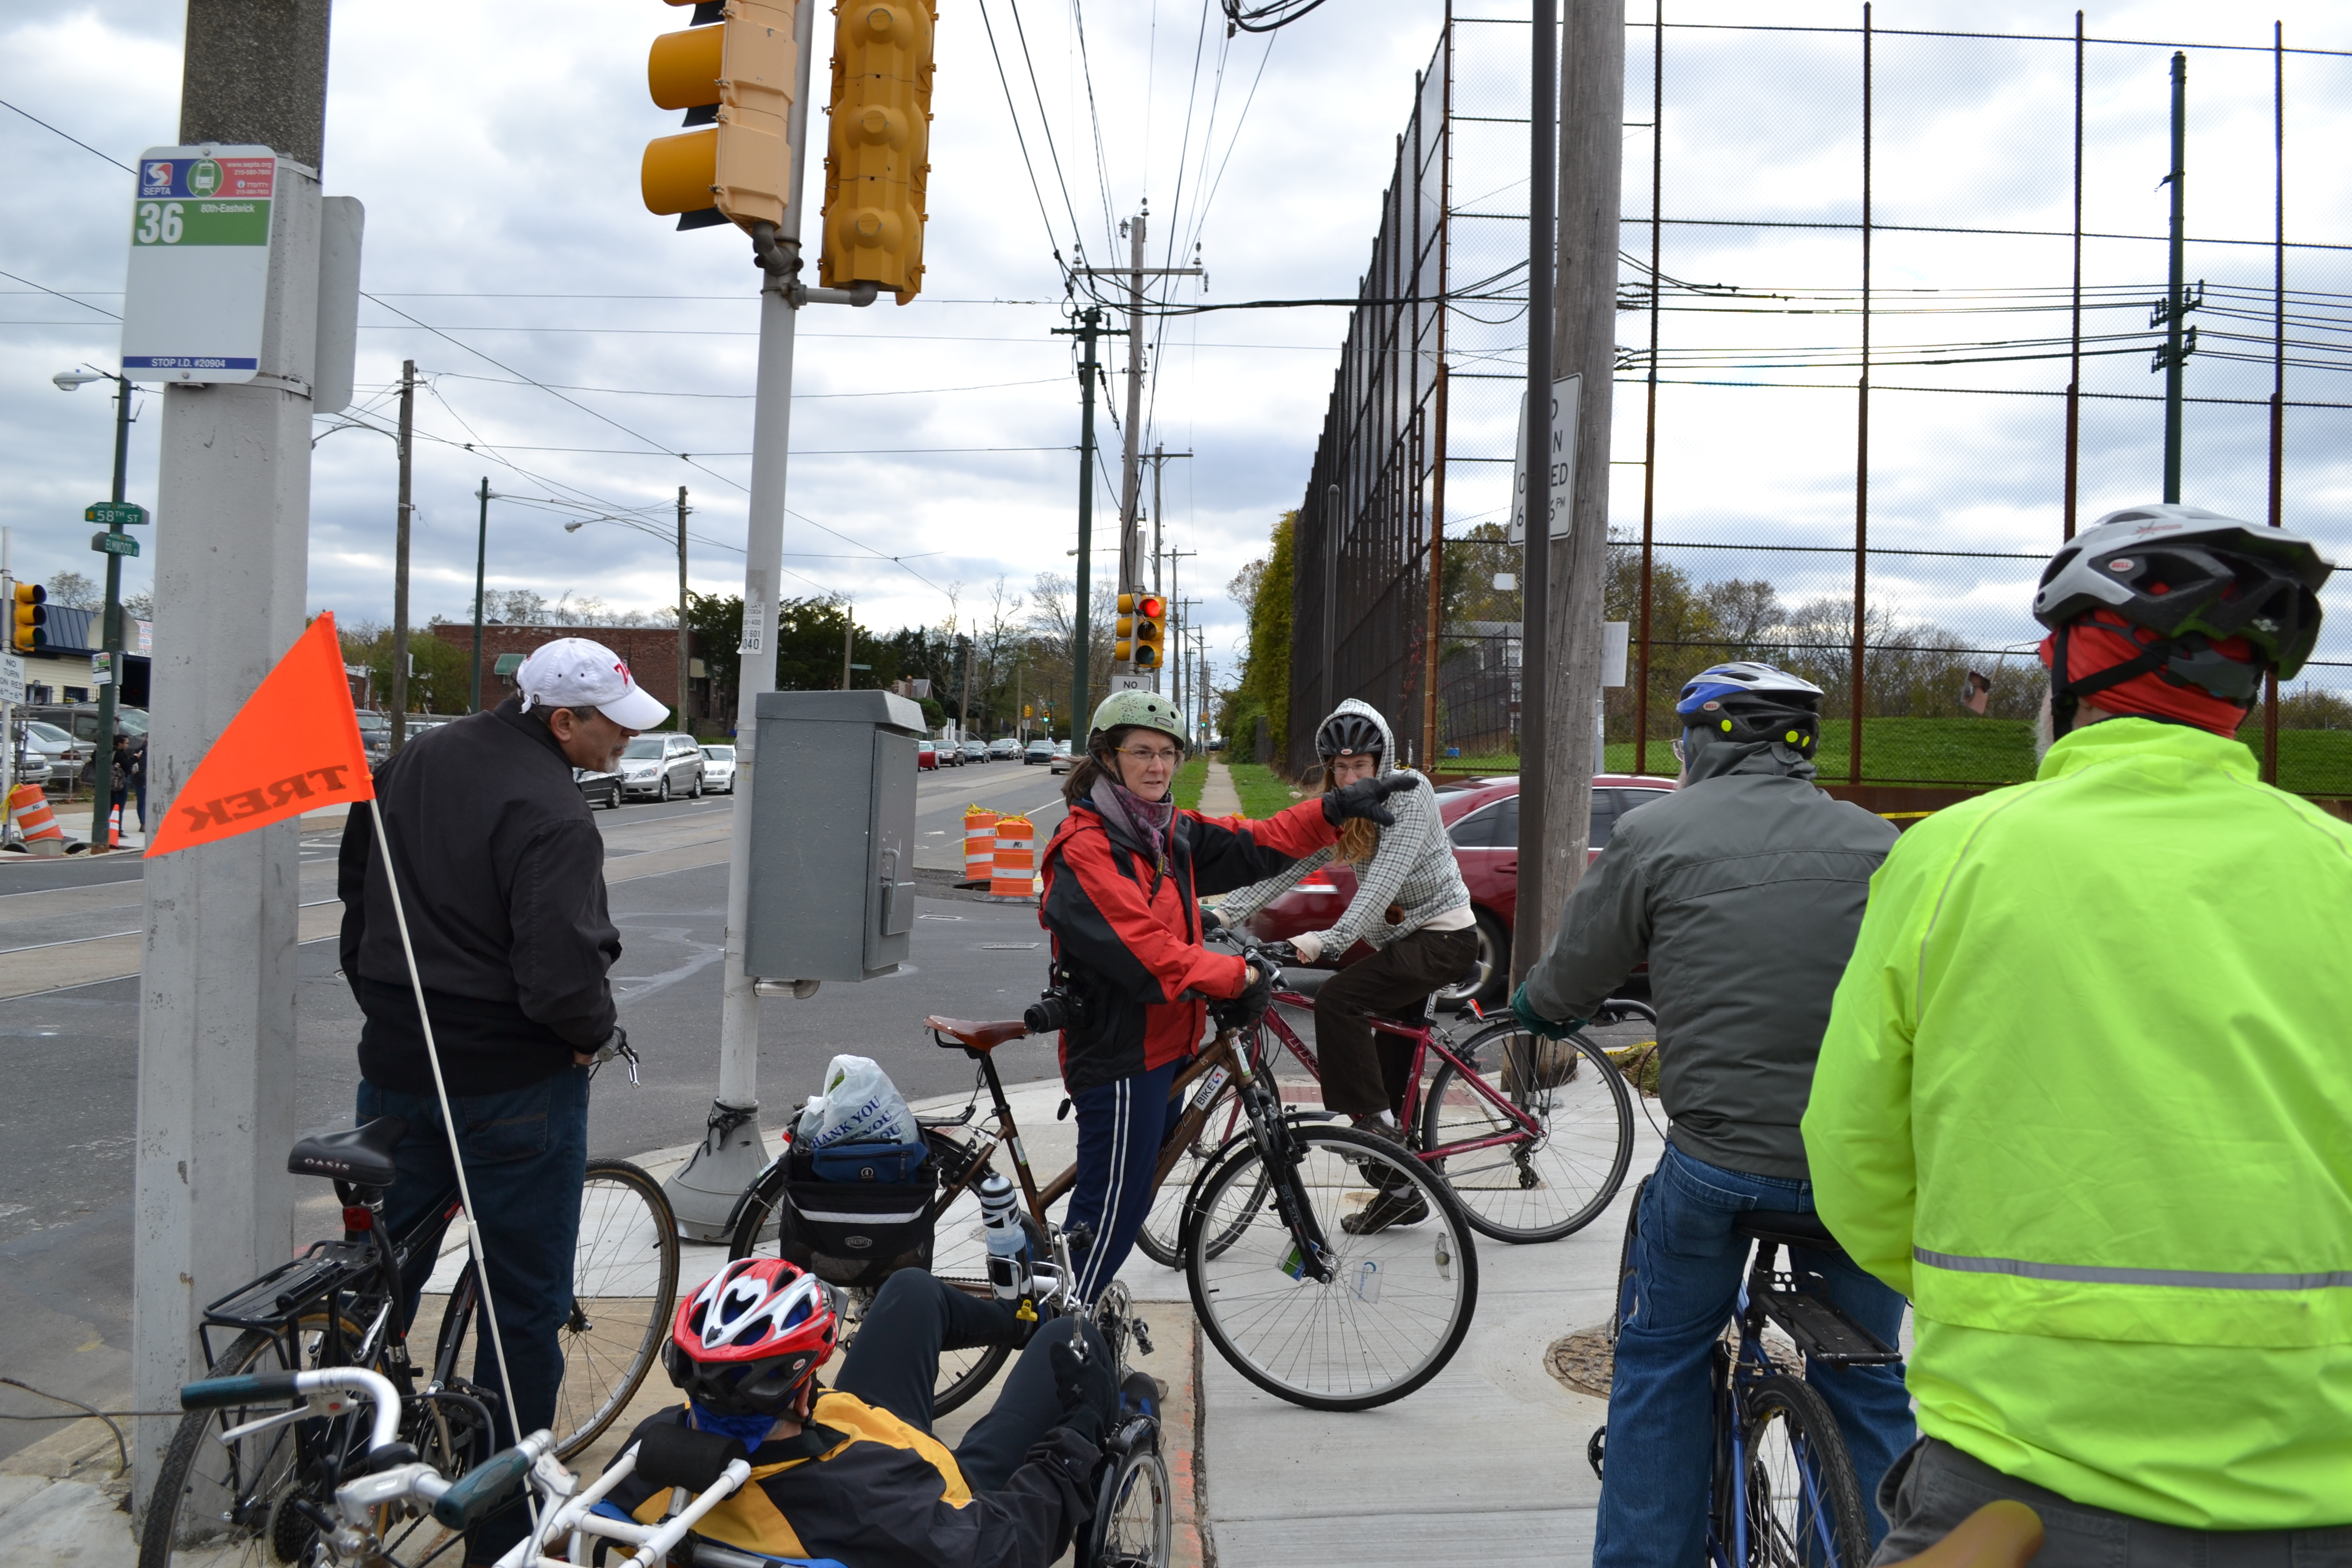 Sarah Clark Stuart explained the 58th Street Greenway vision to tour participants Saturday